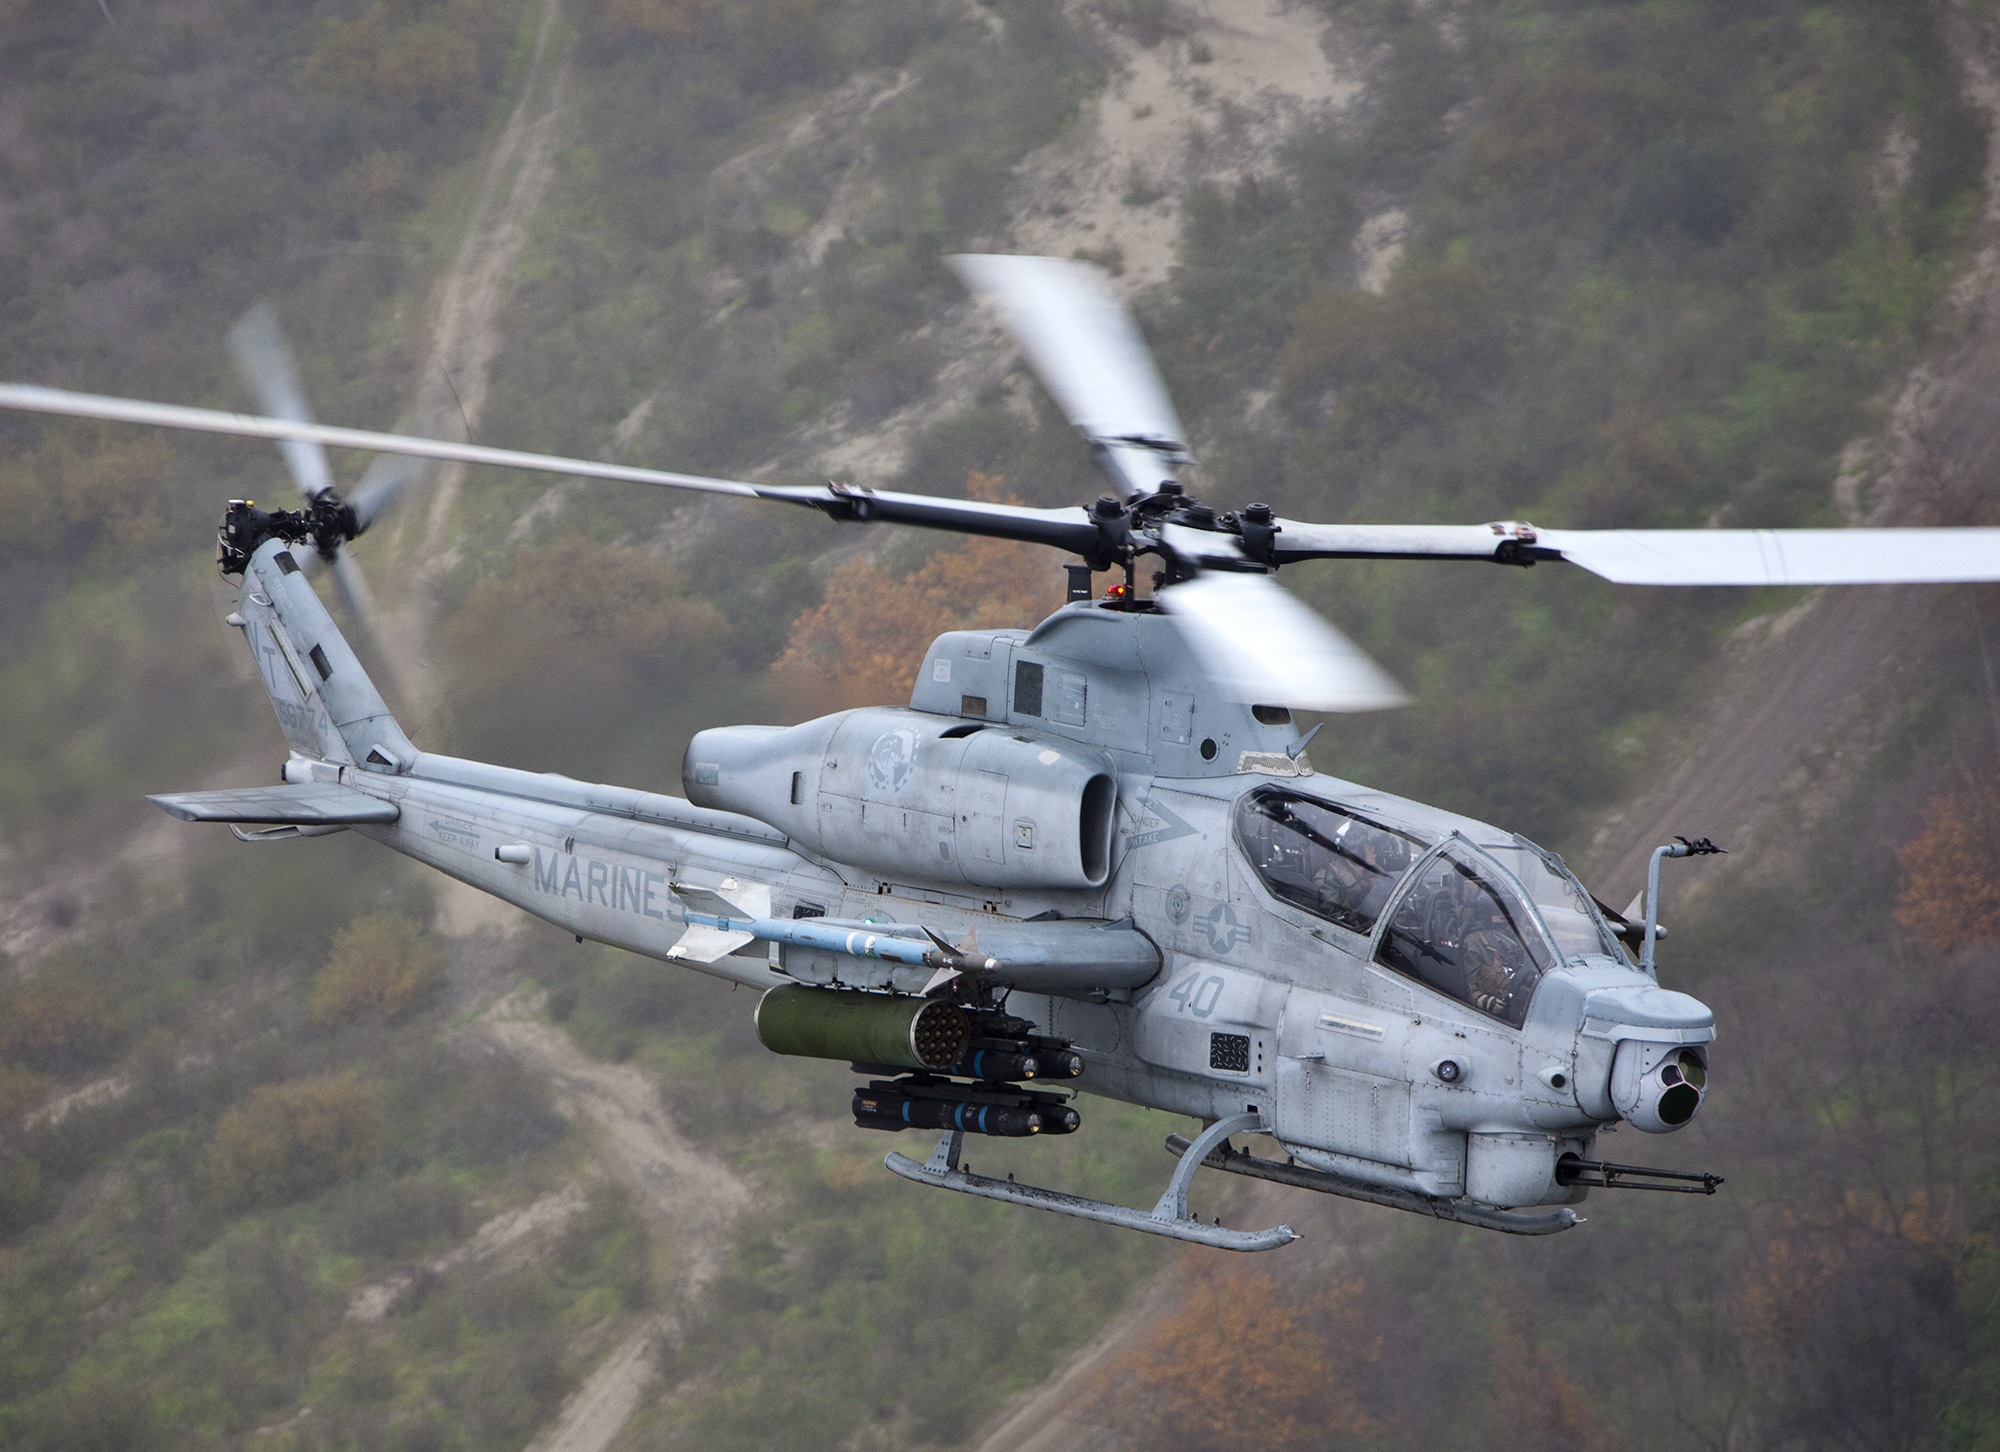 Romania plans to buy AH-1Z Viper attack helicopters